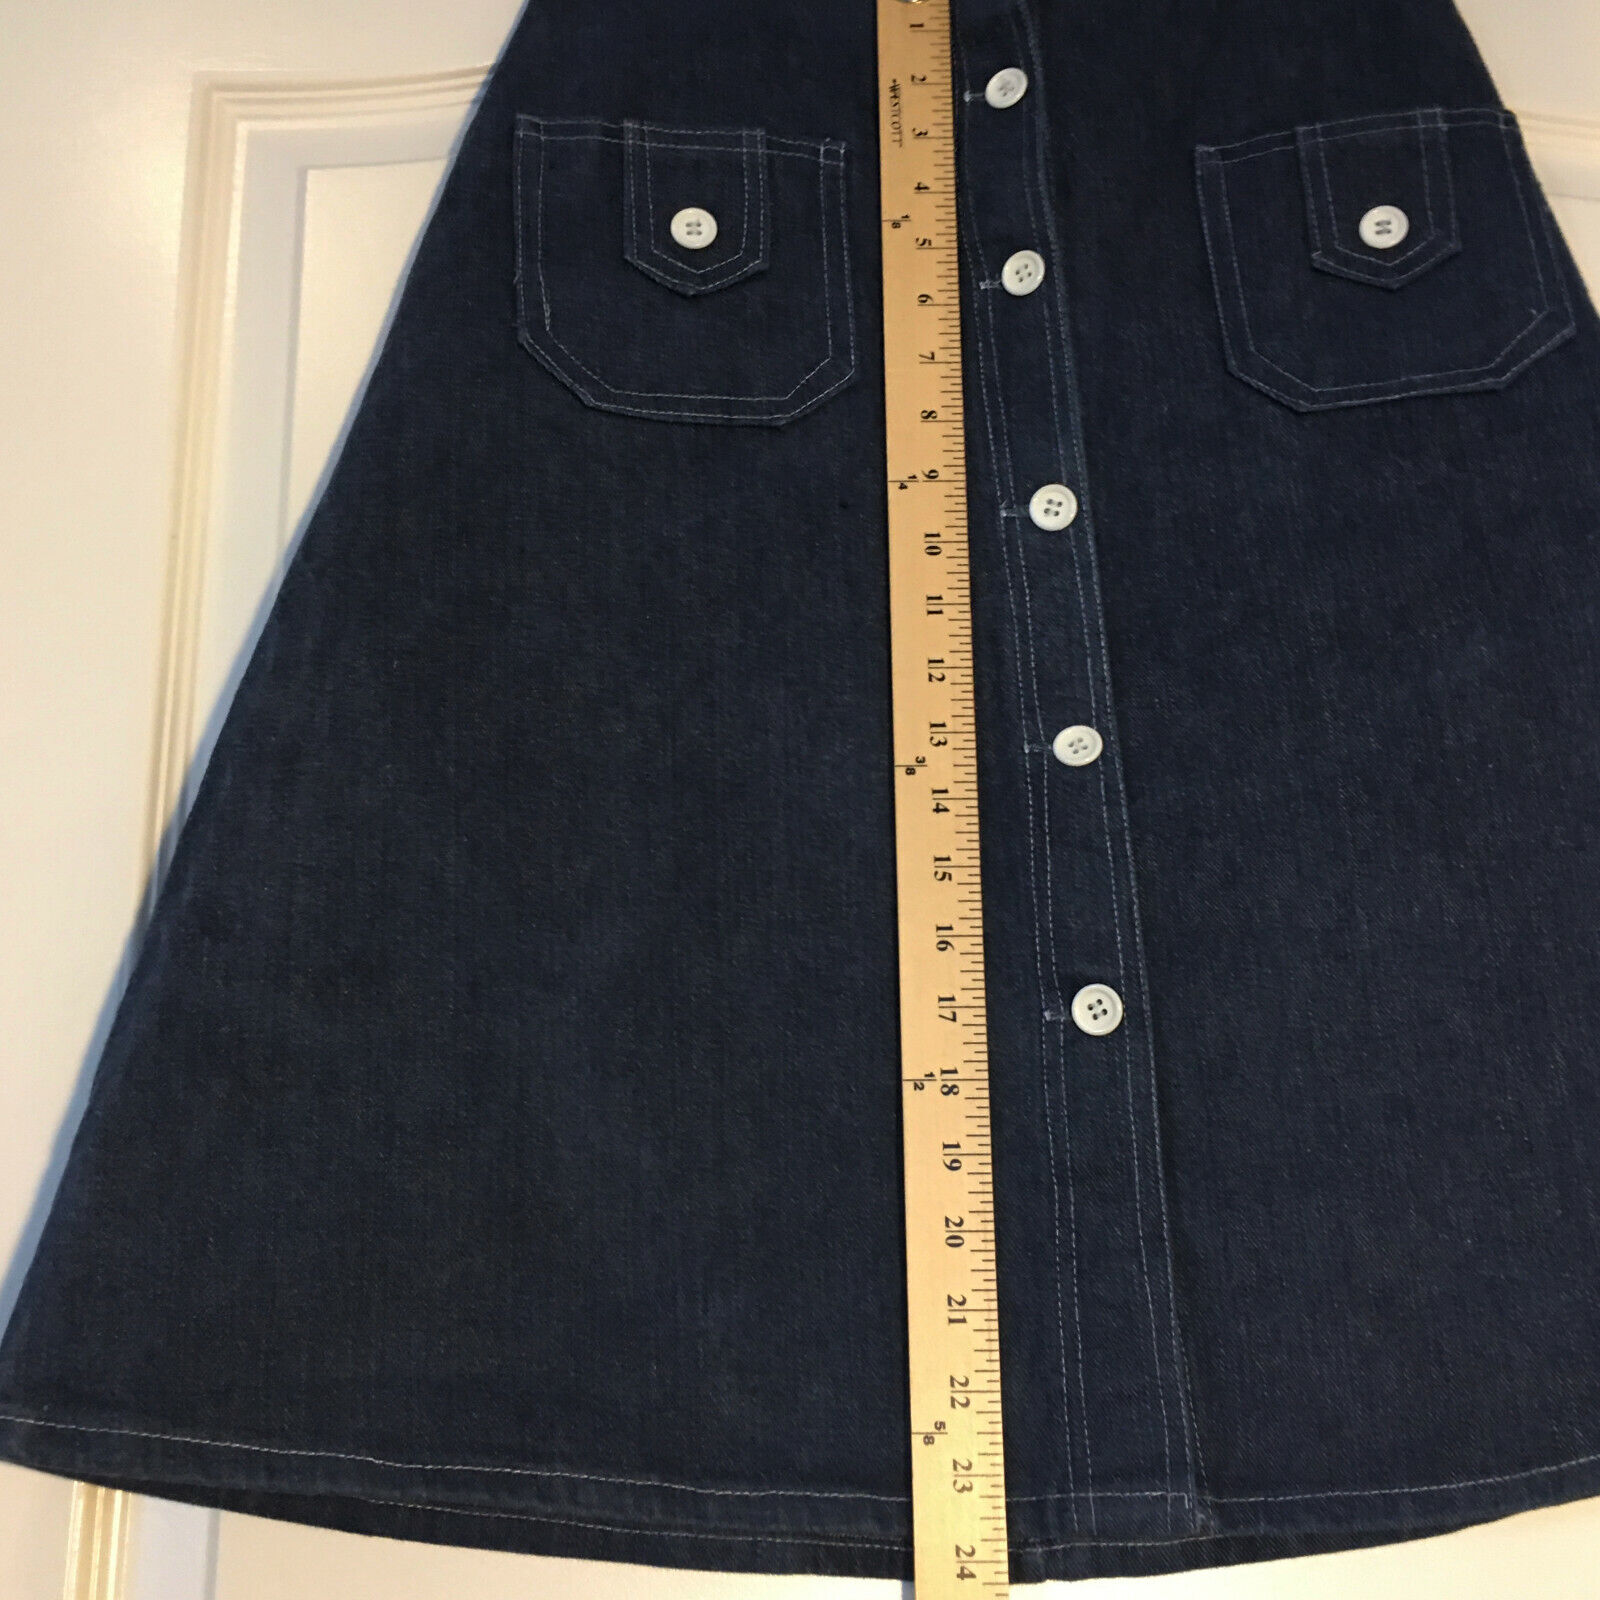 Peekaboo A-Line Vintage Inspired Denim Button Fro… - image 5